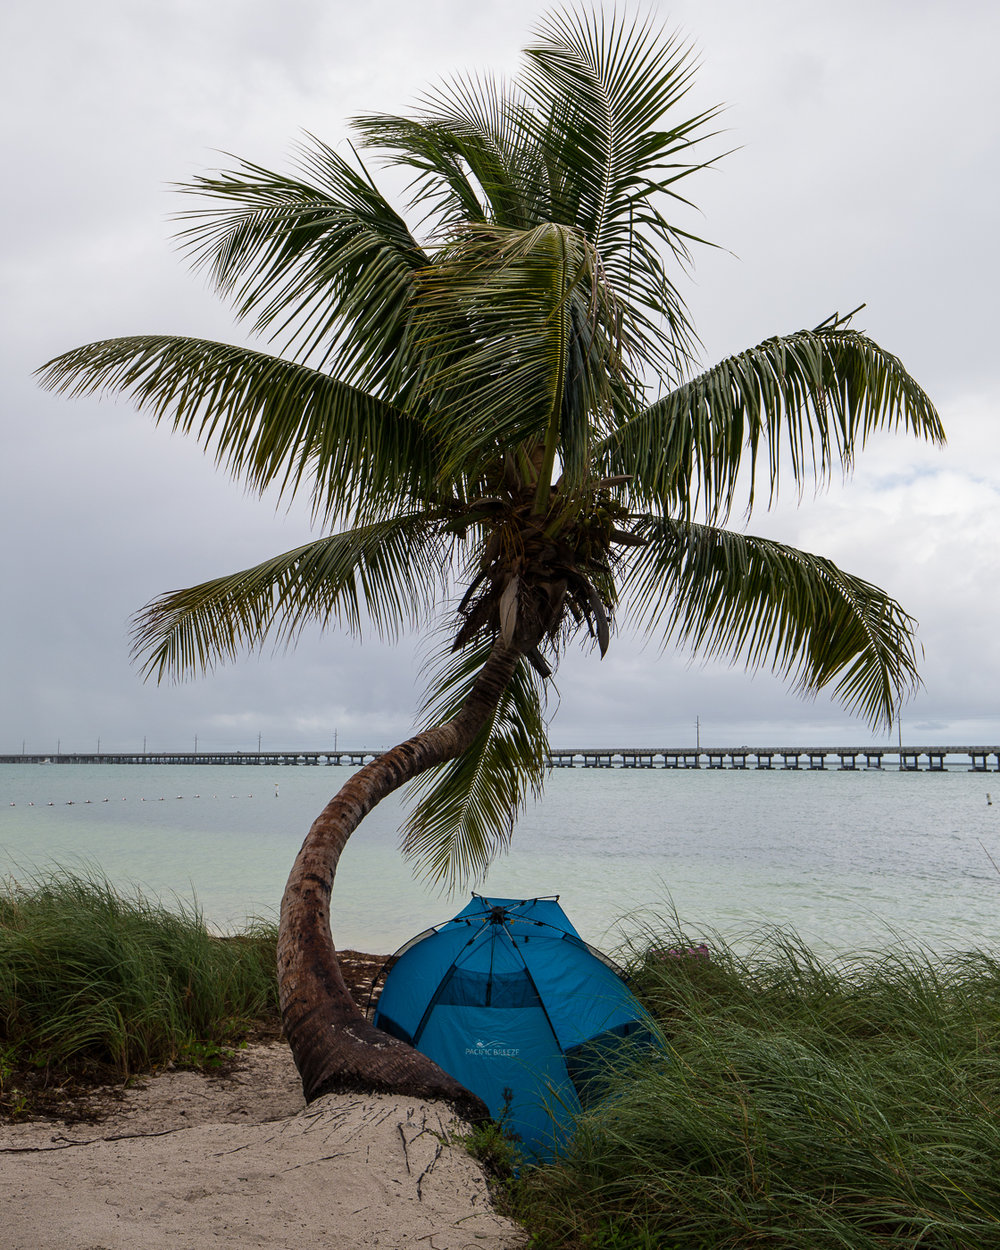 Ideal palm tree shelter